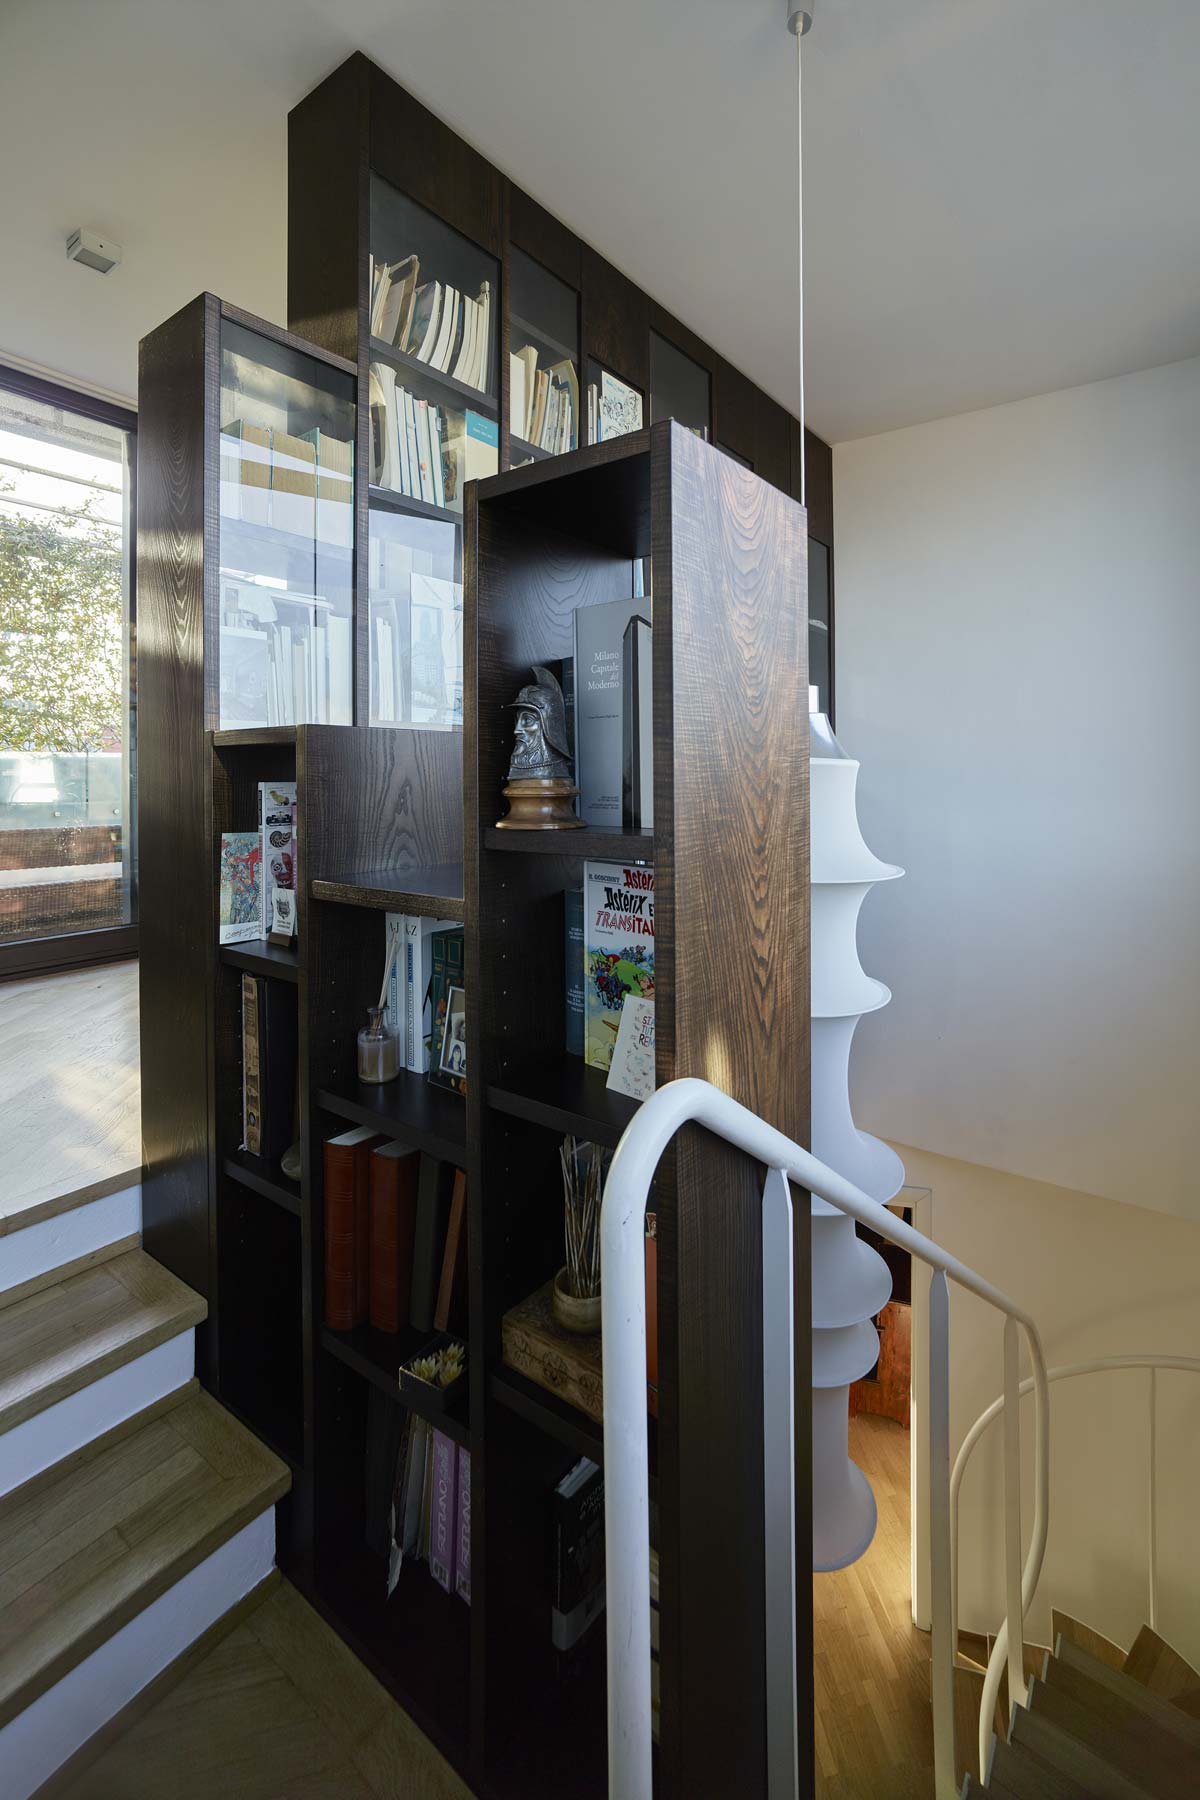 Picture of the wooden bookcase